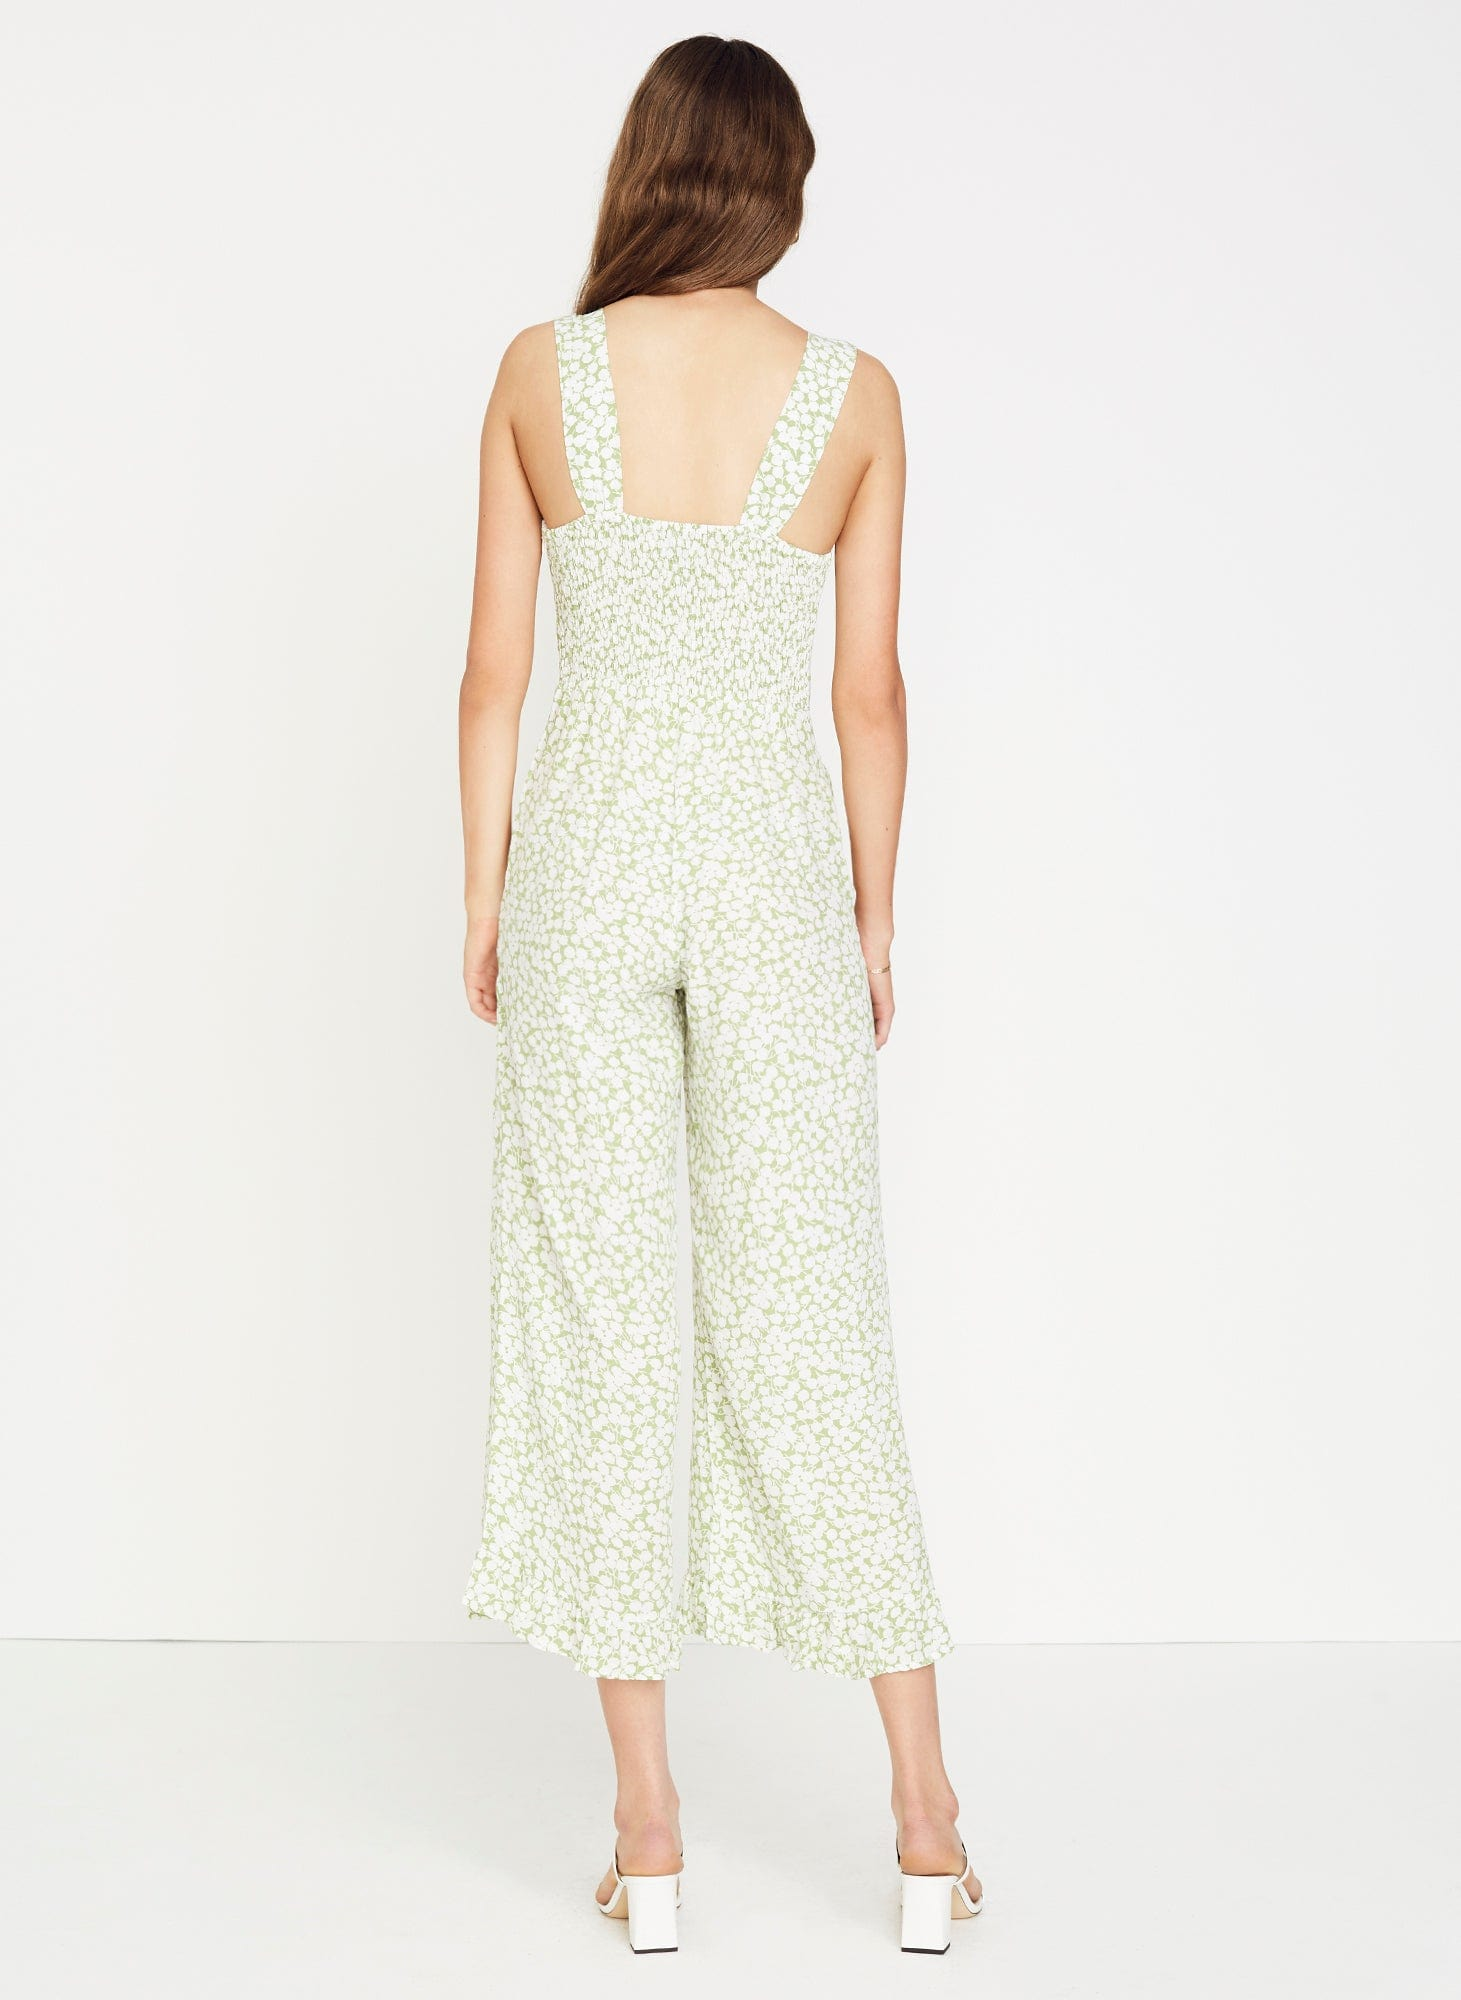 BELLA FLORAL PRINT - AVOCADO GREEN - BODHI JUMPSUIT